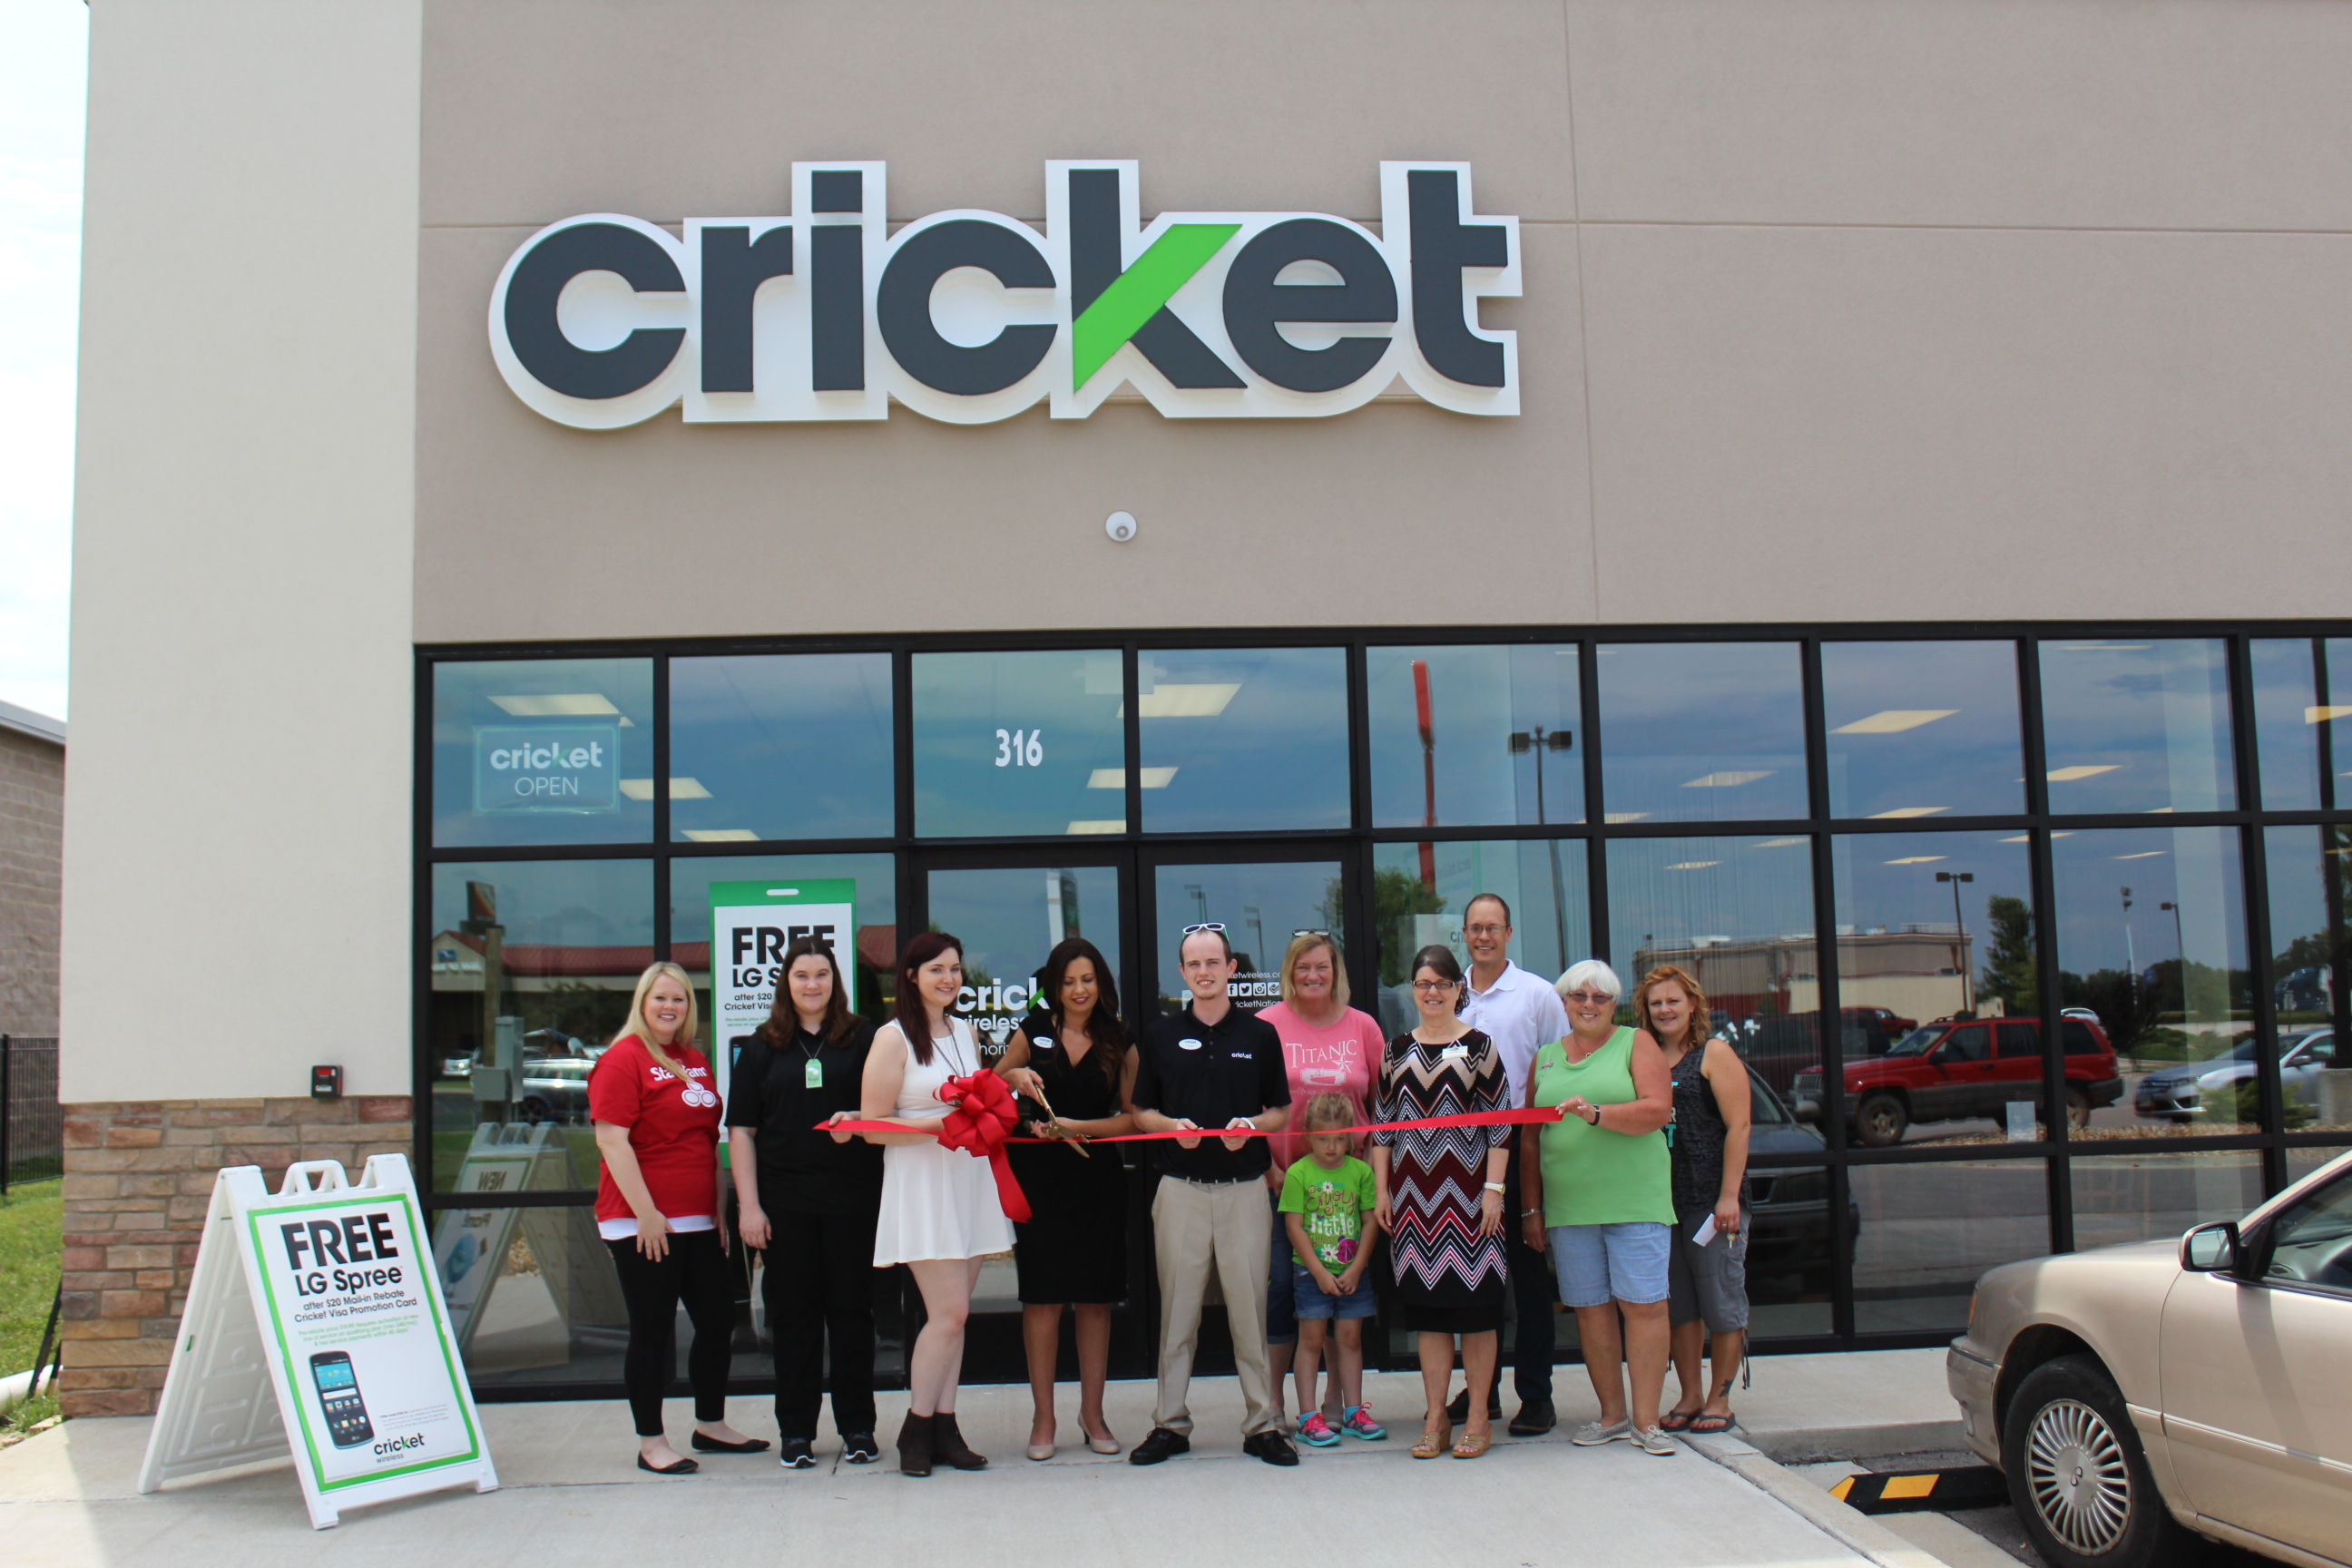 Cricket Wireless picture1.JPG